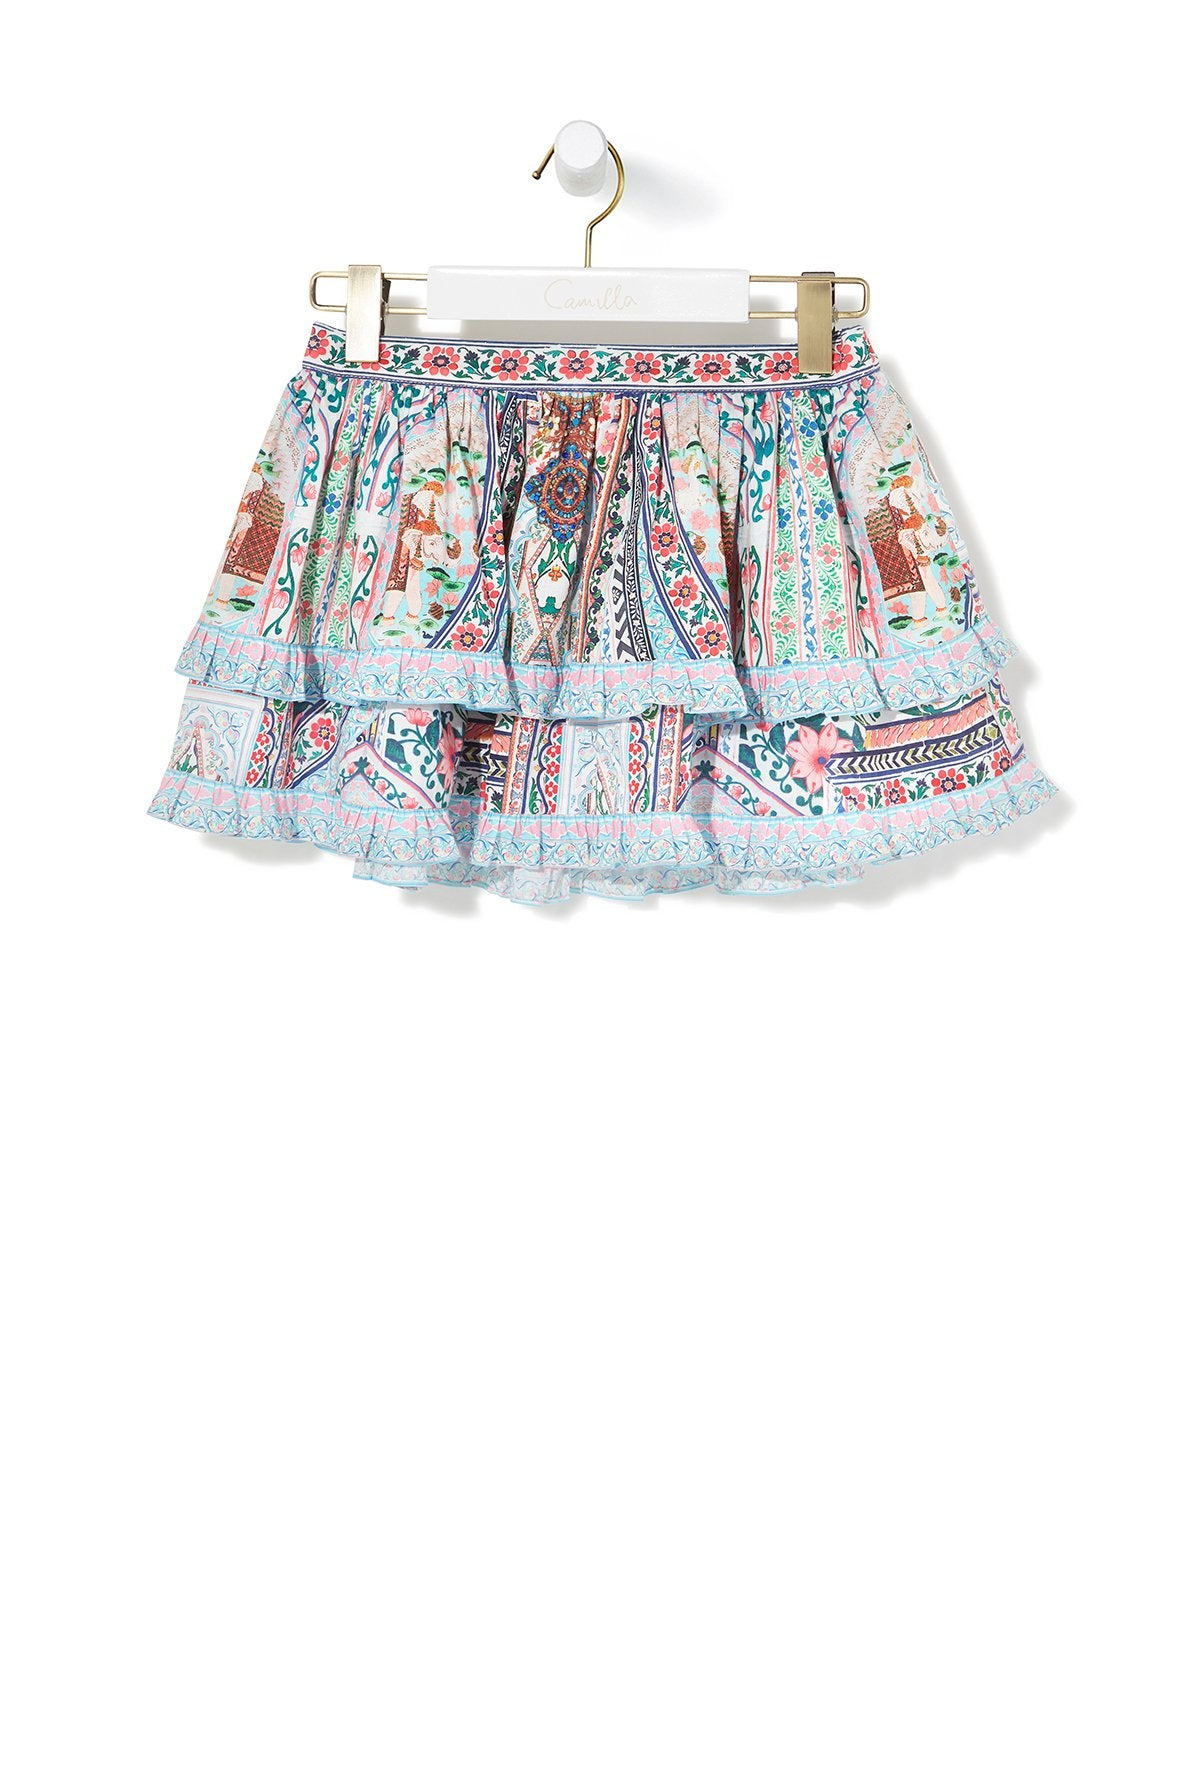 EVERLASTING LIGHT DOUBLE LAYER FRILL SKIRT